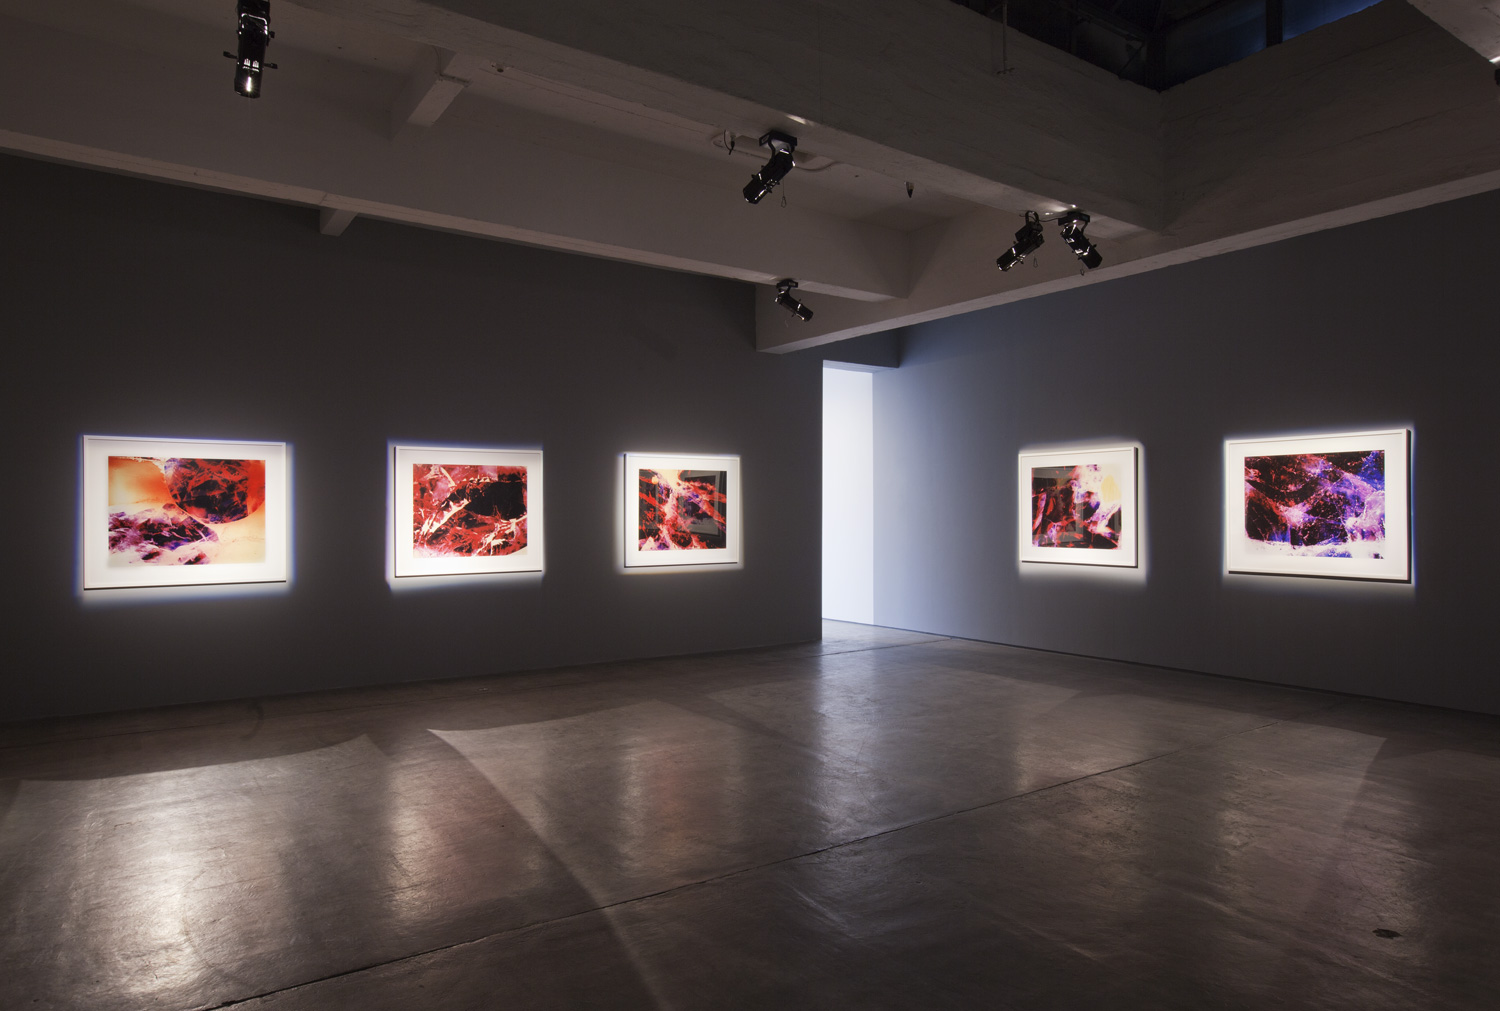 Redshift series,Carey Young,2010,Installation view at Paula Cooper Gallery, New York